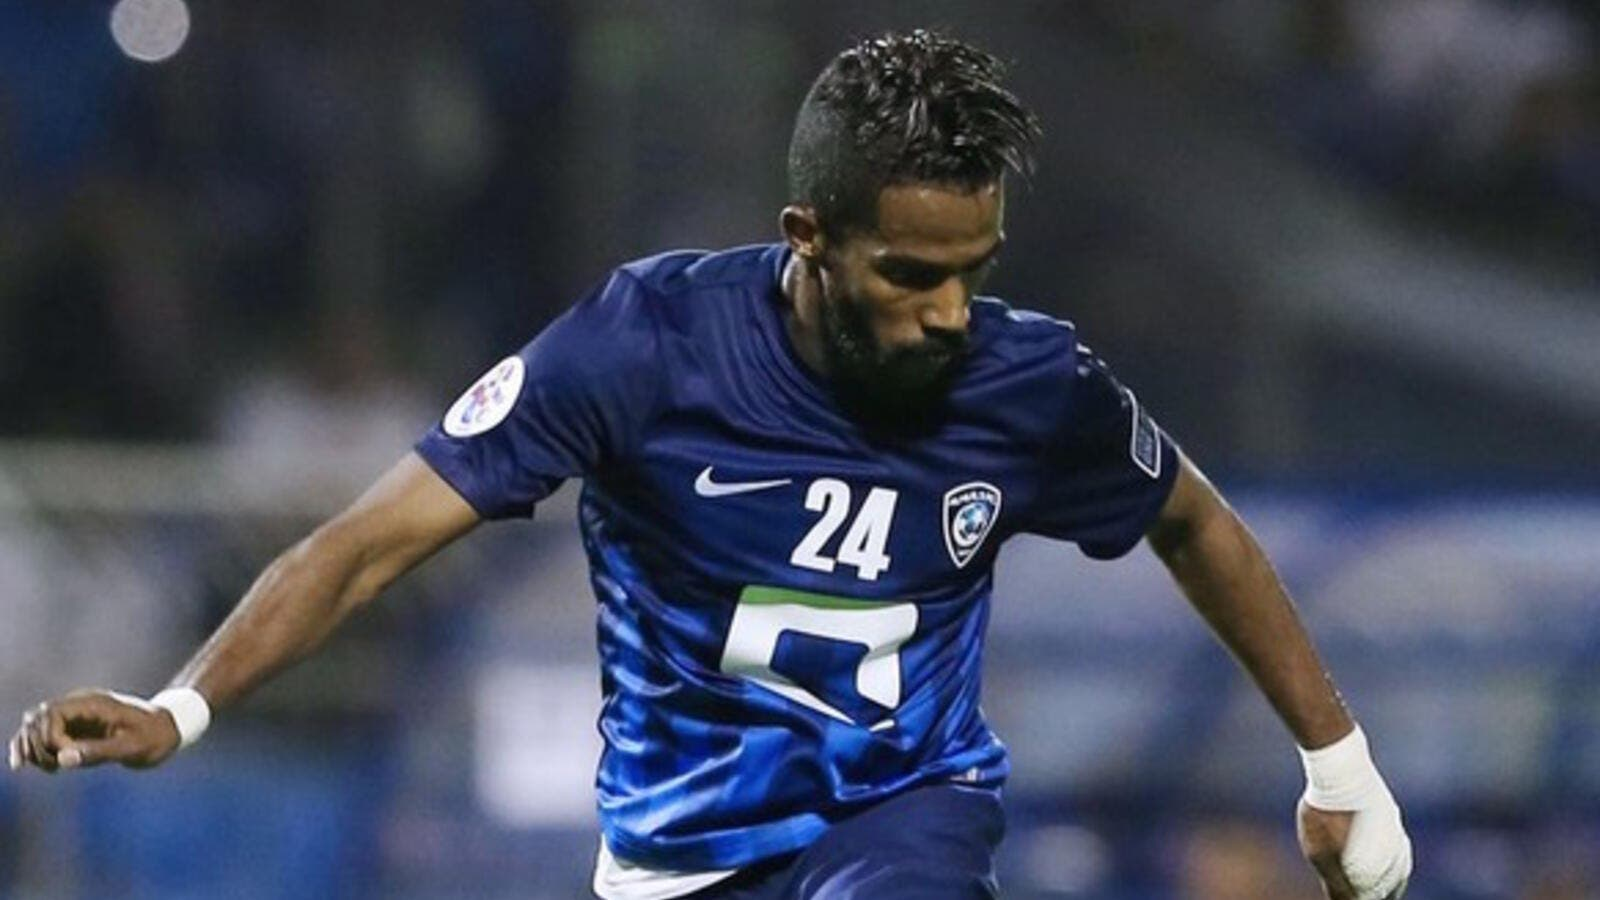 Nawaf Al-Abed has played more than 100 times for Al-Hilal